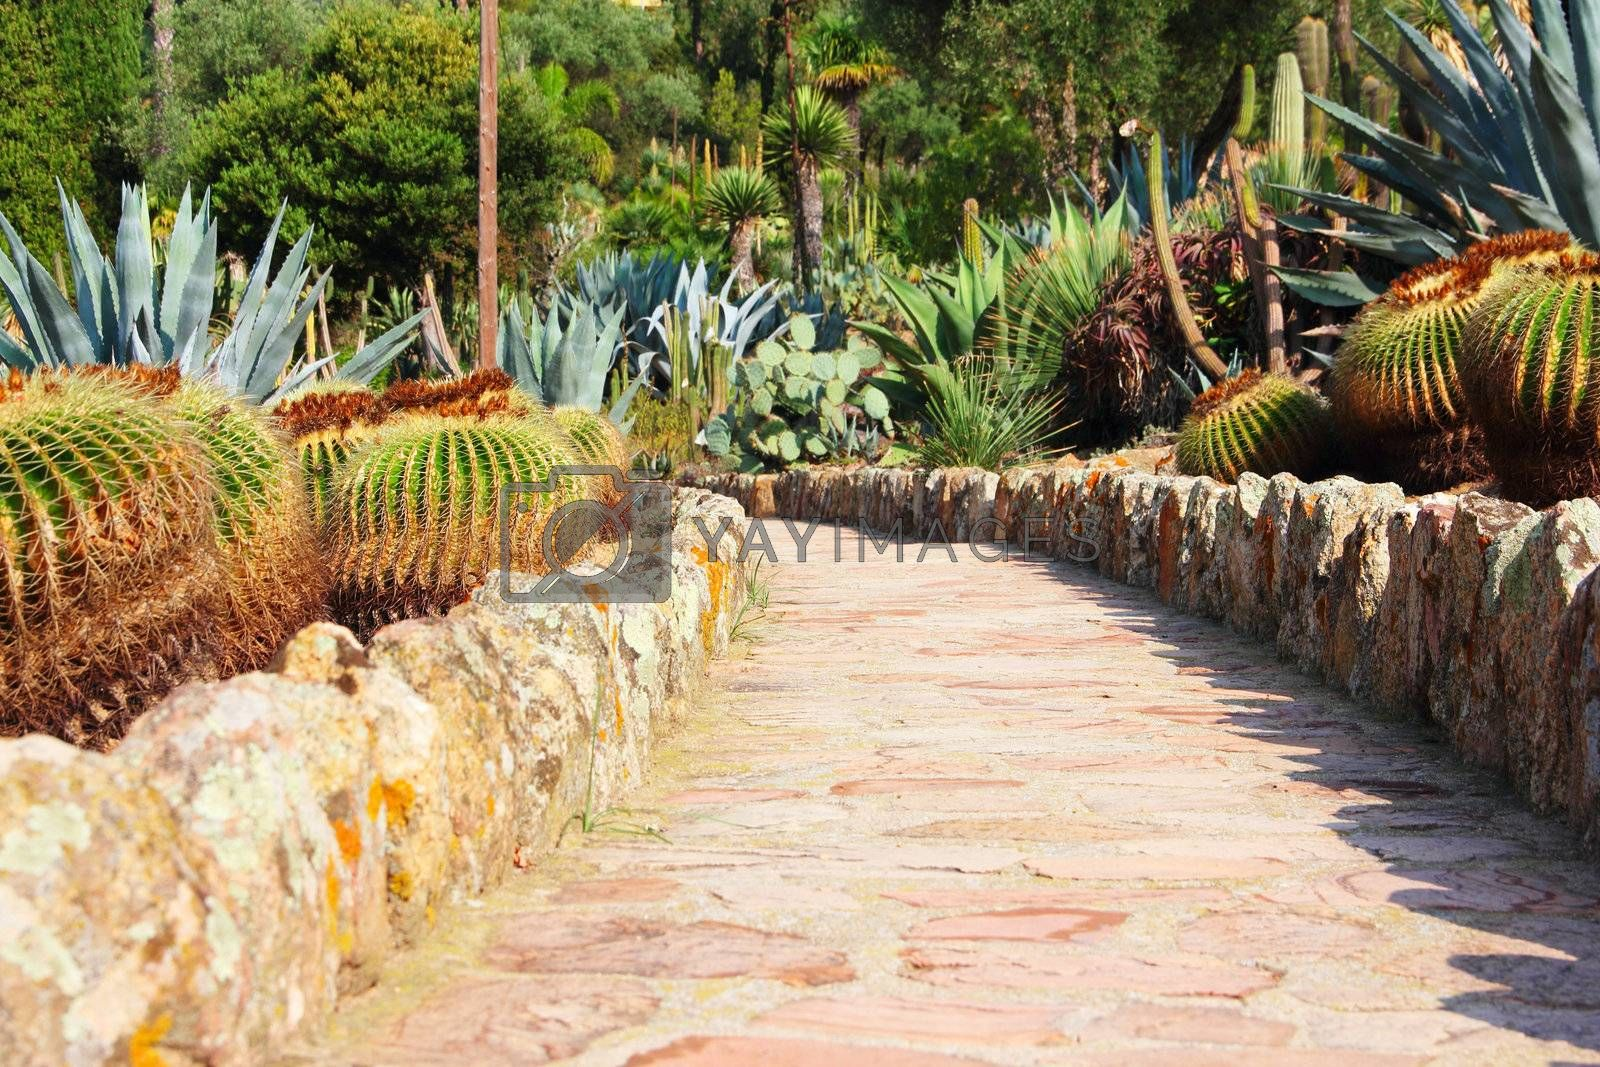 Road in cultivated cactus garden, Spain